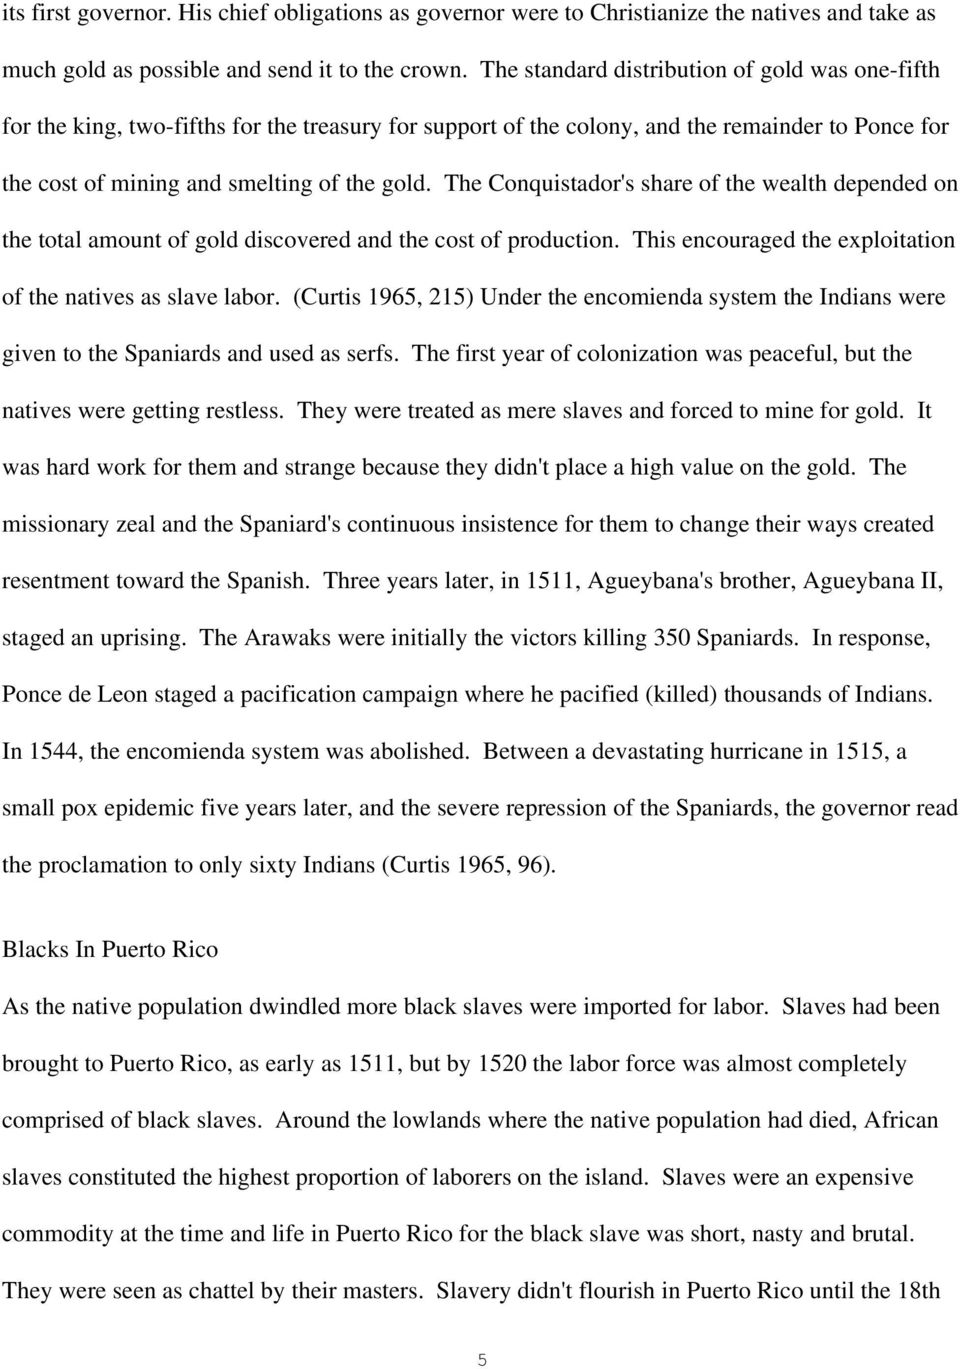 The Conquistador's share of the wealth depended on the total amount of gold discovered and the cost of production. This encouraged the exploitation of the natives as slave labor.